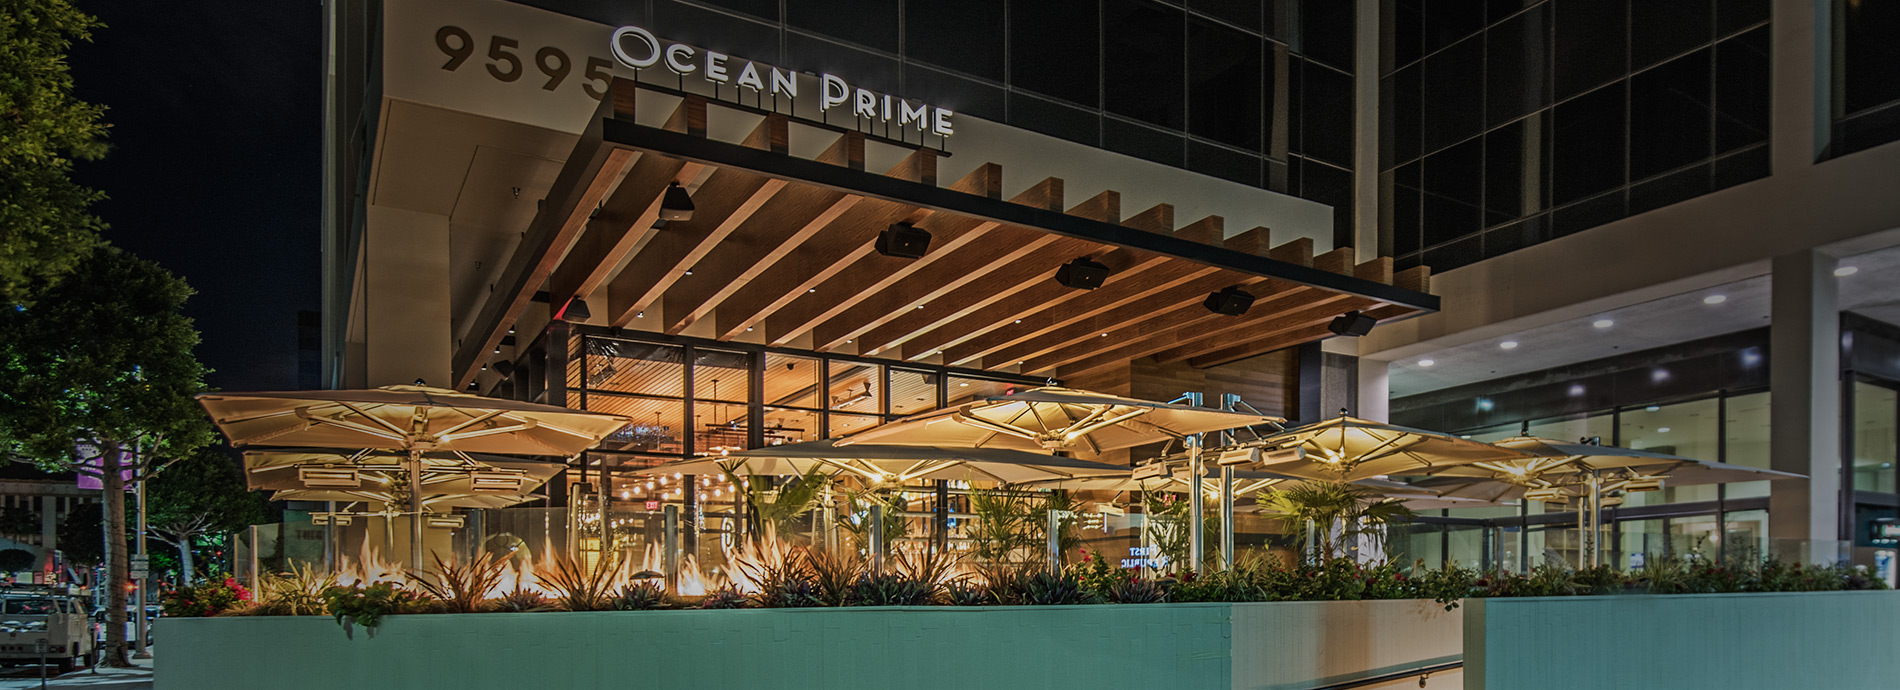 Ocean prime beverly hills prime steak fresh seafood fish for Fish grill beverly